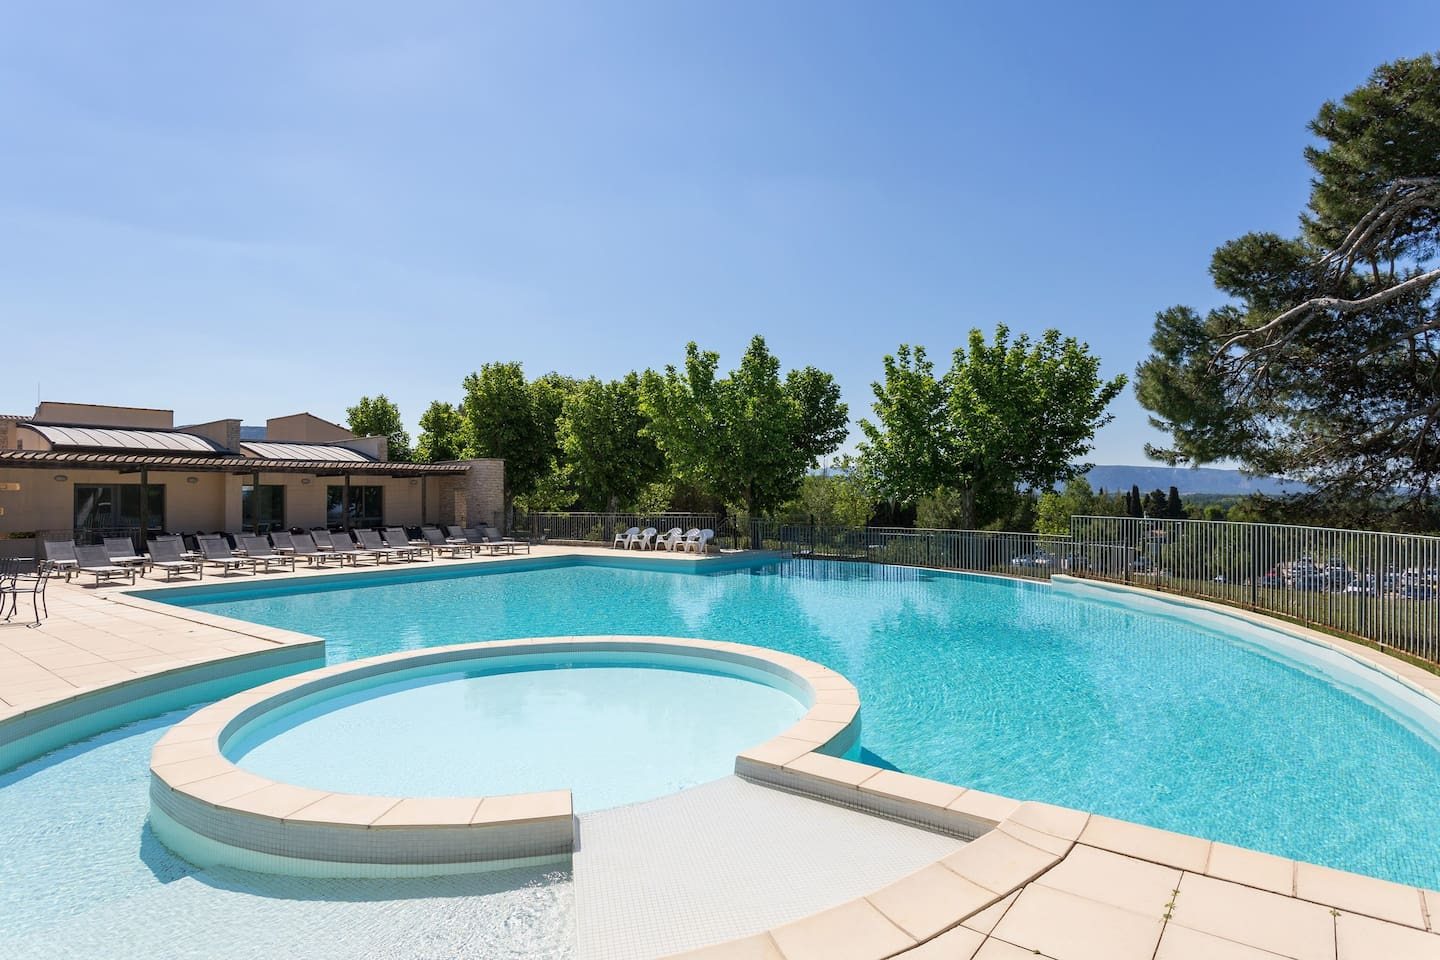 You will love swimming in the outdoor pool.